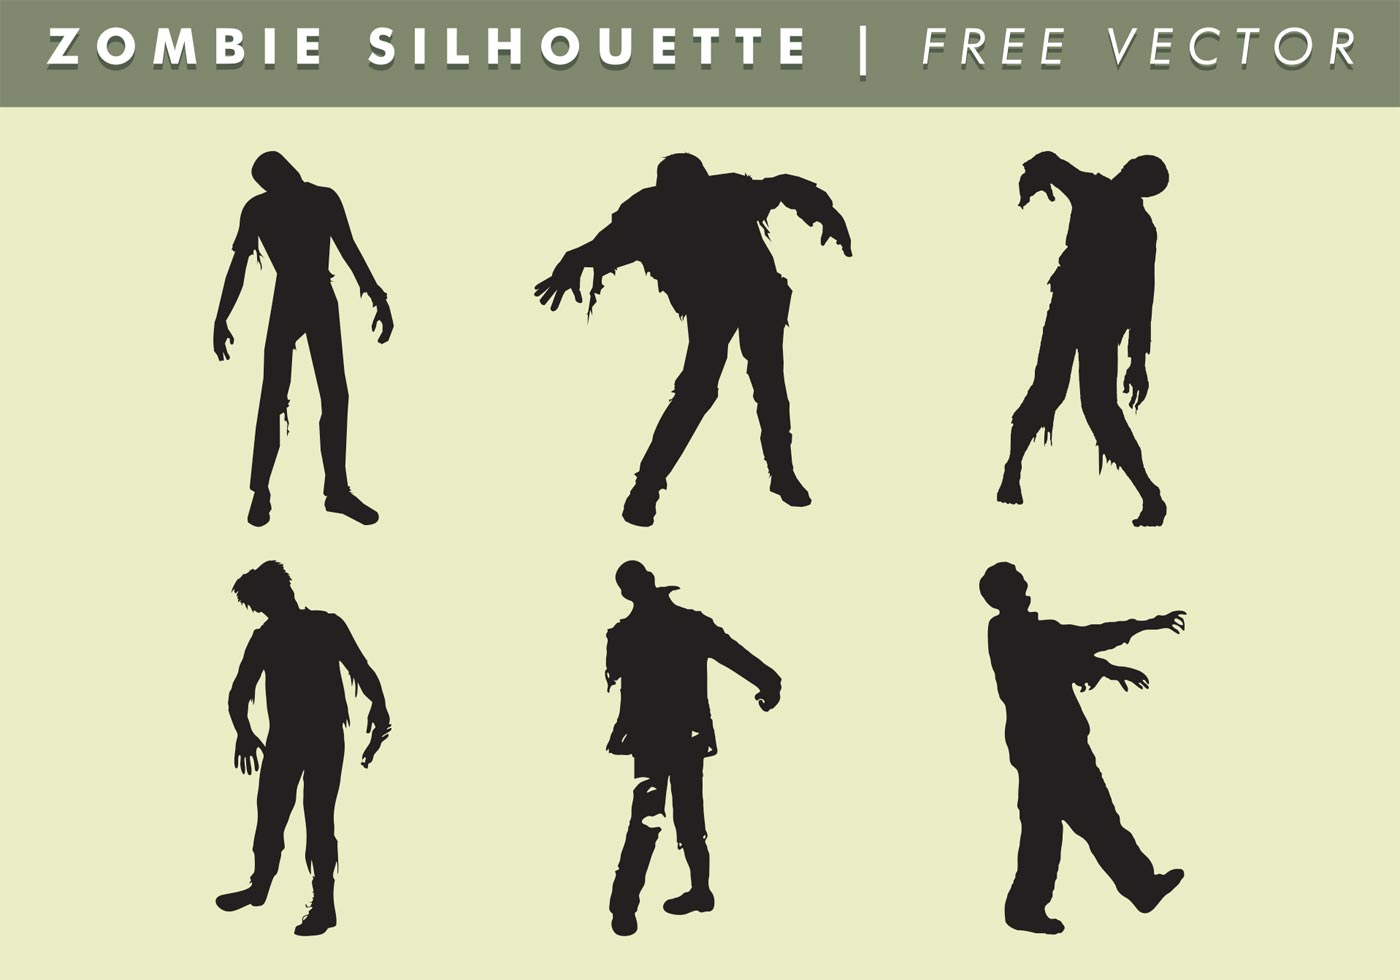 Zombie Silhouette Vector Free